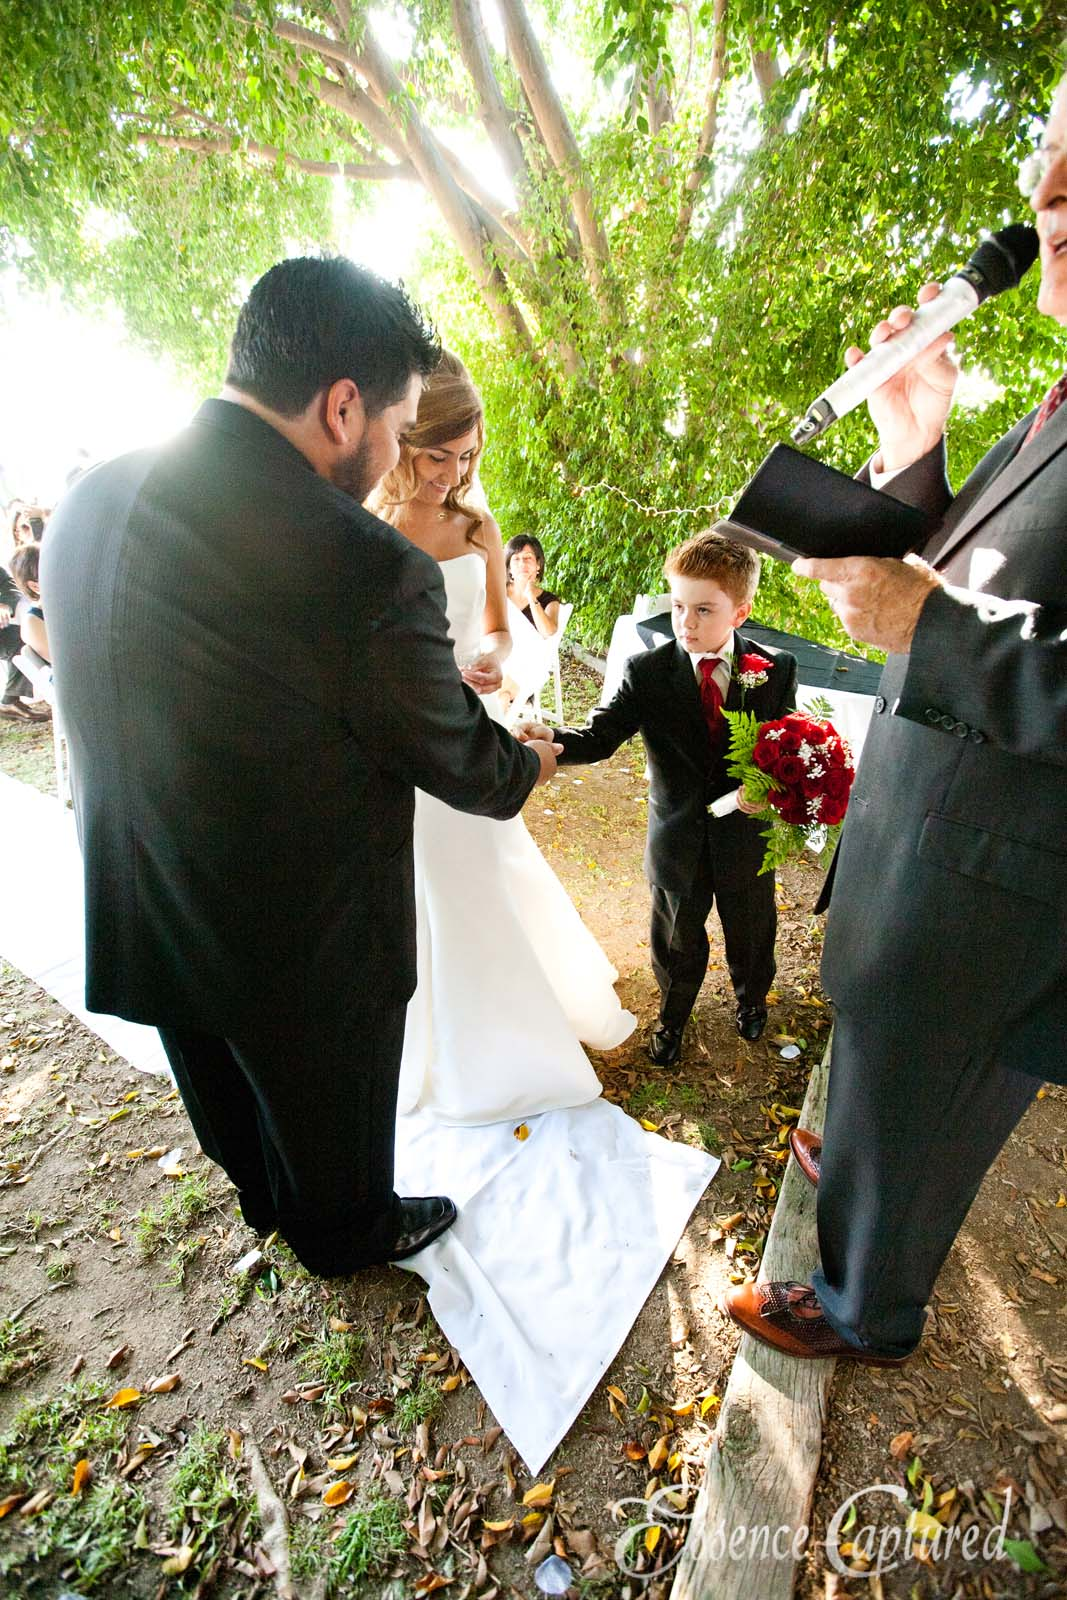 ring bearer hands ring to groom at wedding alter